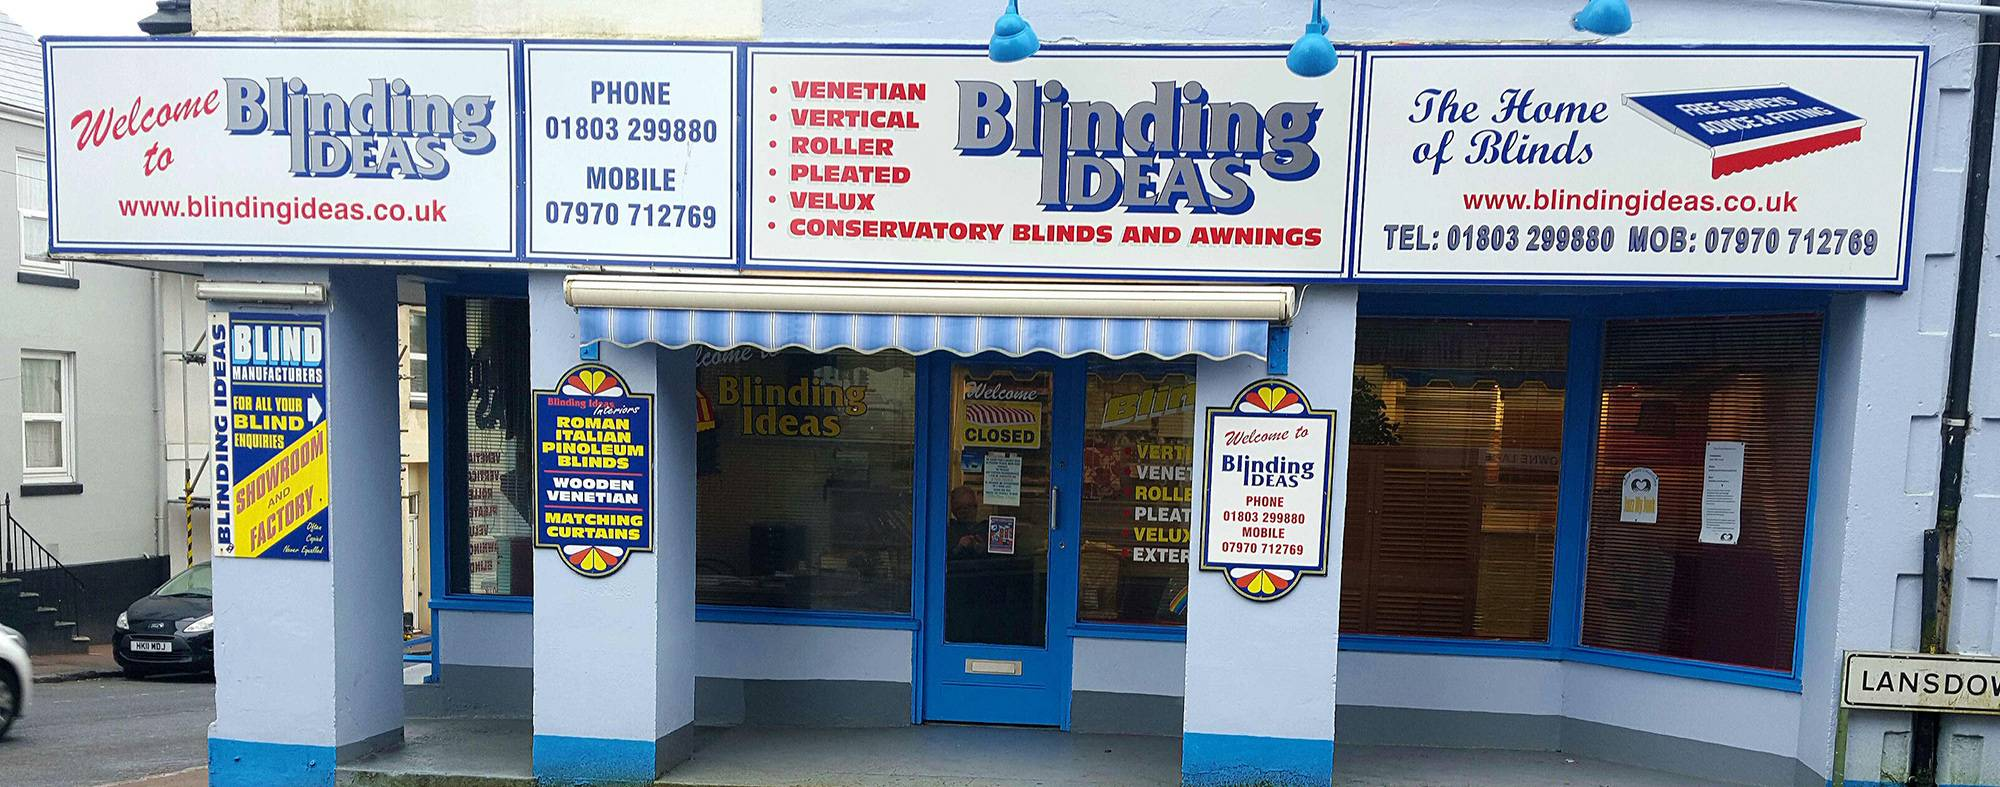 Blinding ideas quality blinds in torquay and devon for Shop front design ideas